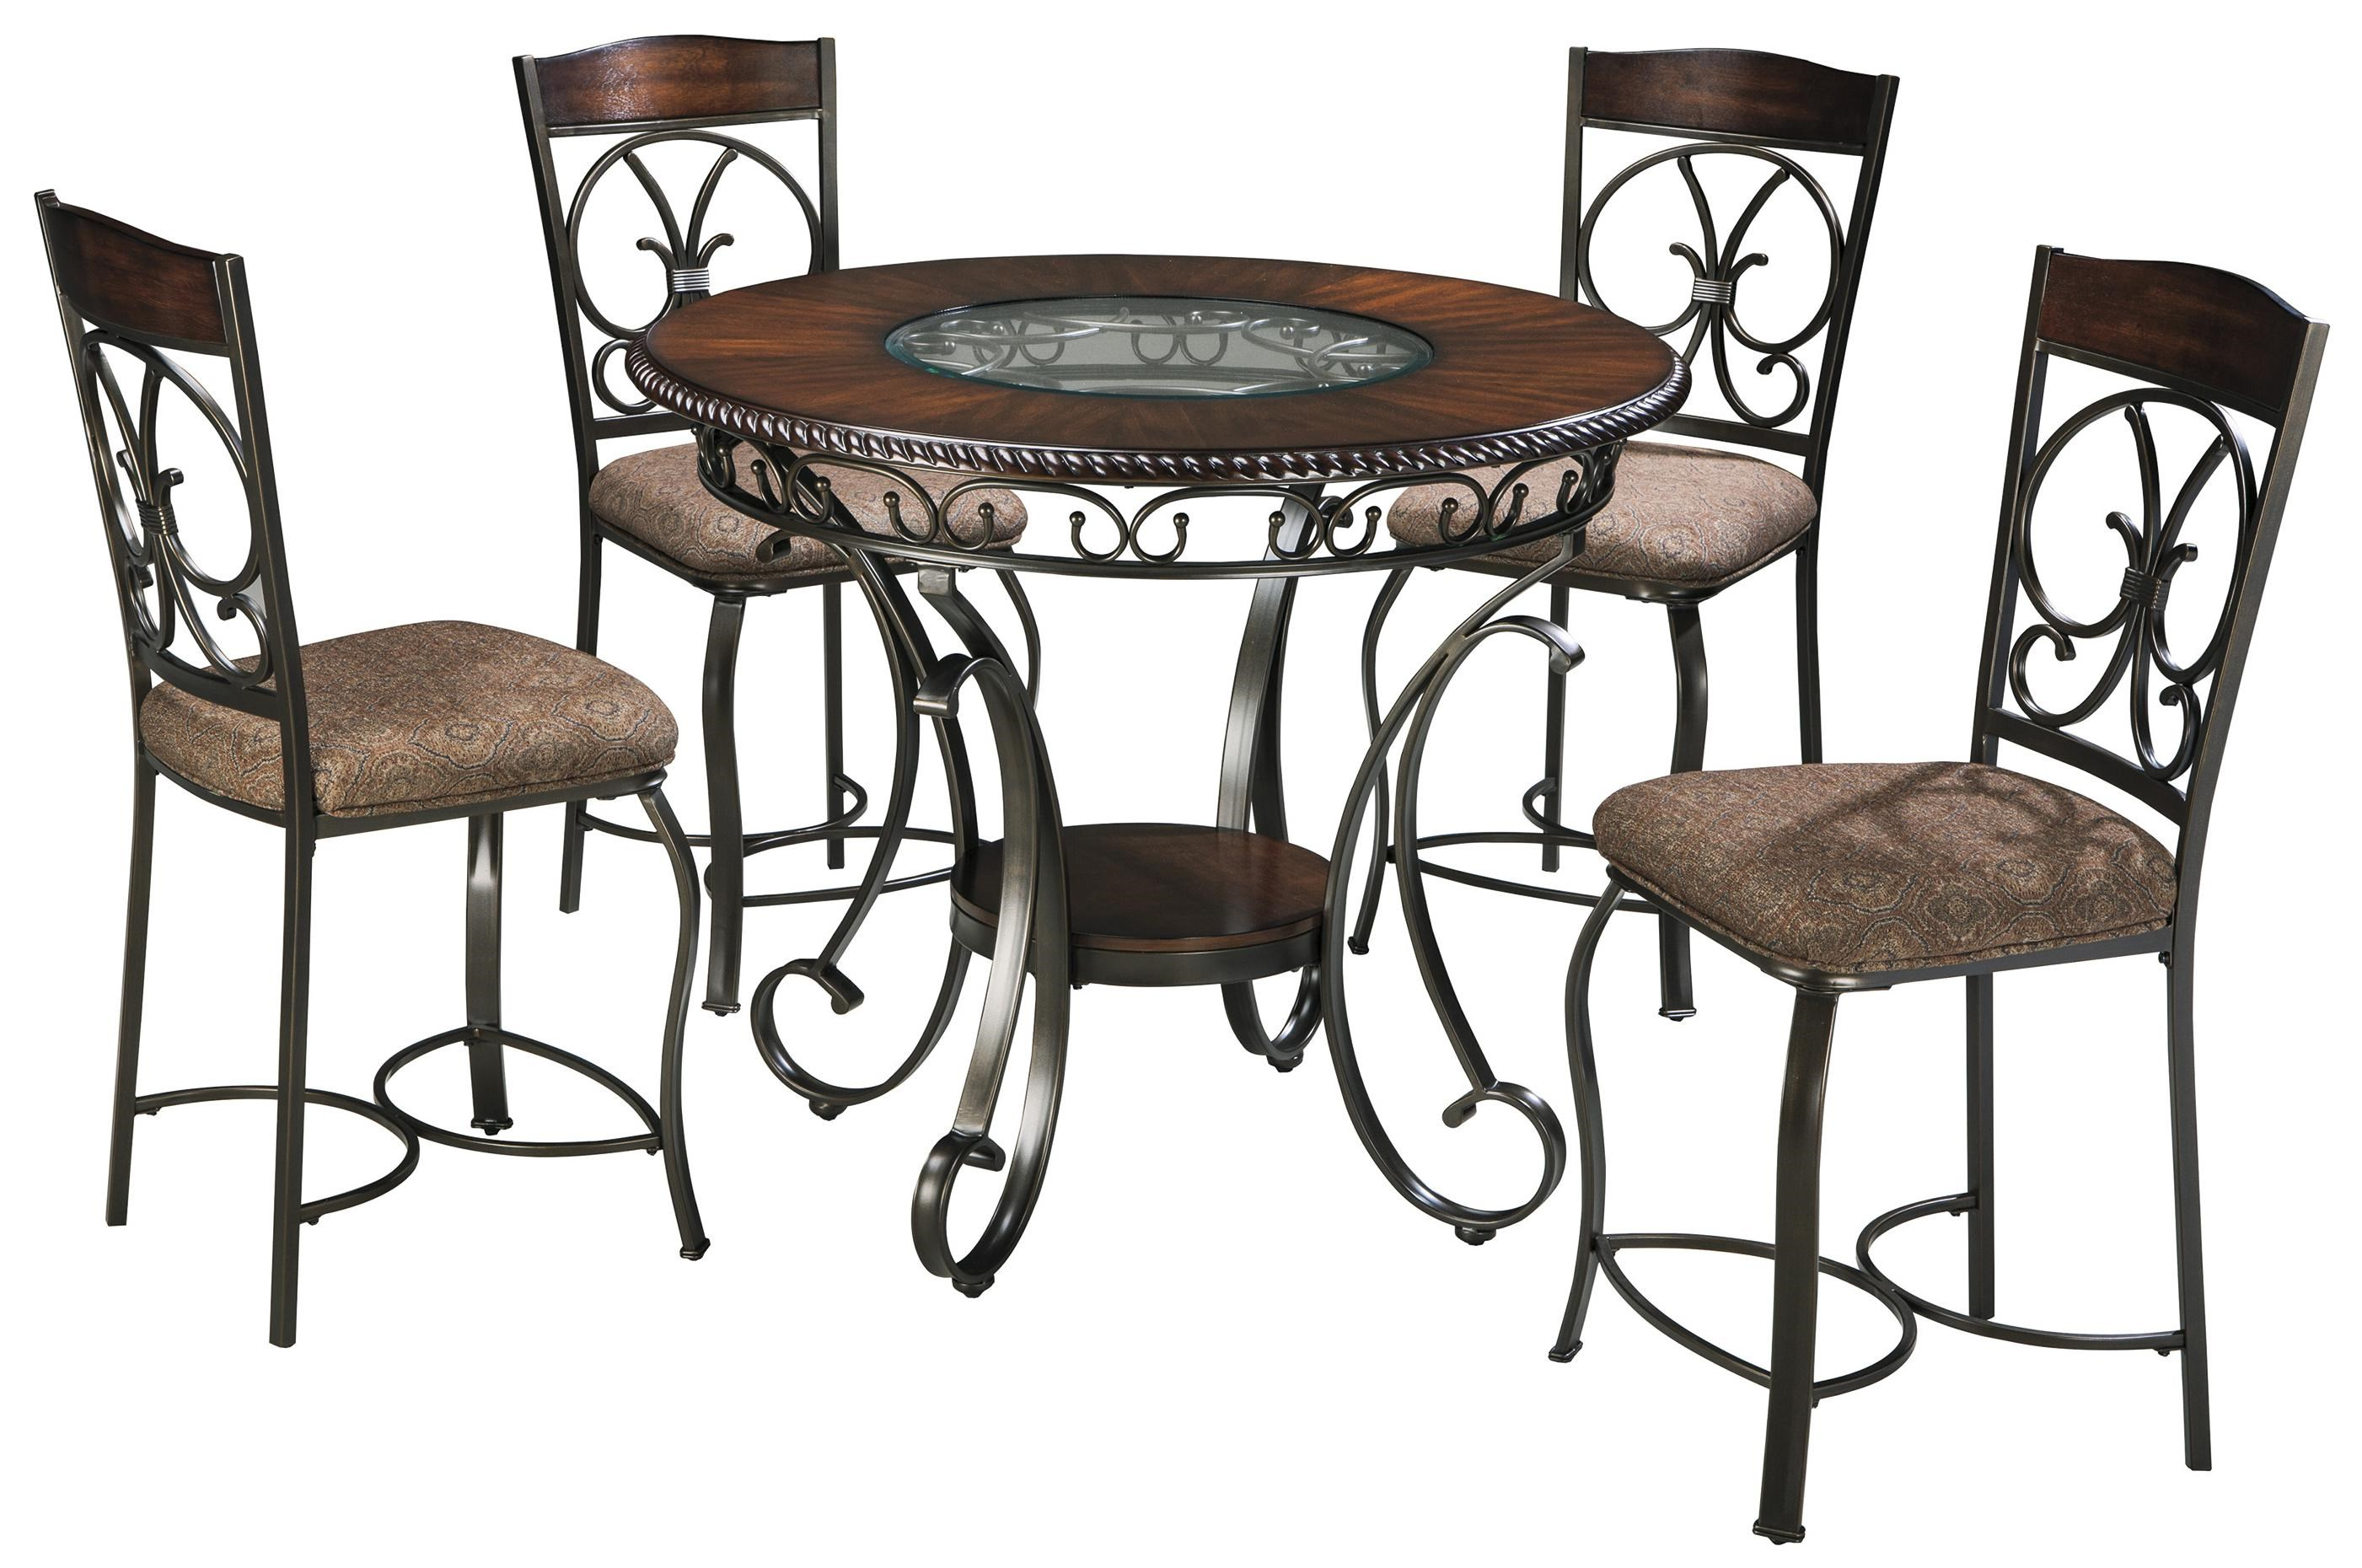 Signature Design By Ashley Glambrey Round Counter Table And 4 Barstool Set  With Metal Accents   Royal Furniture   Pub Table And Stool Set